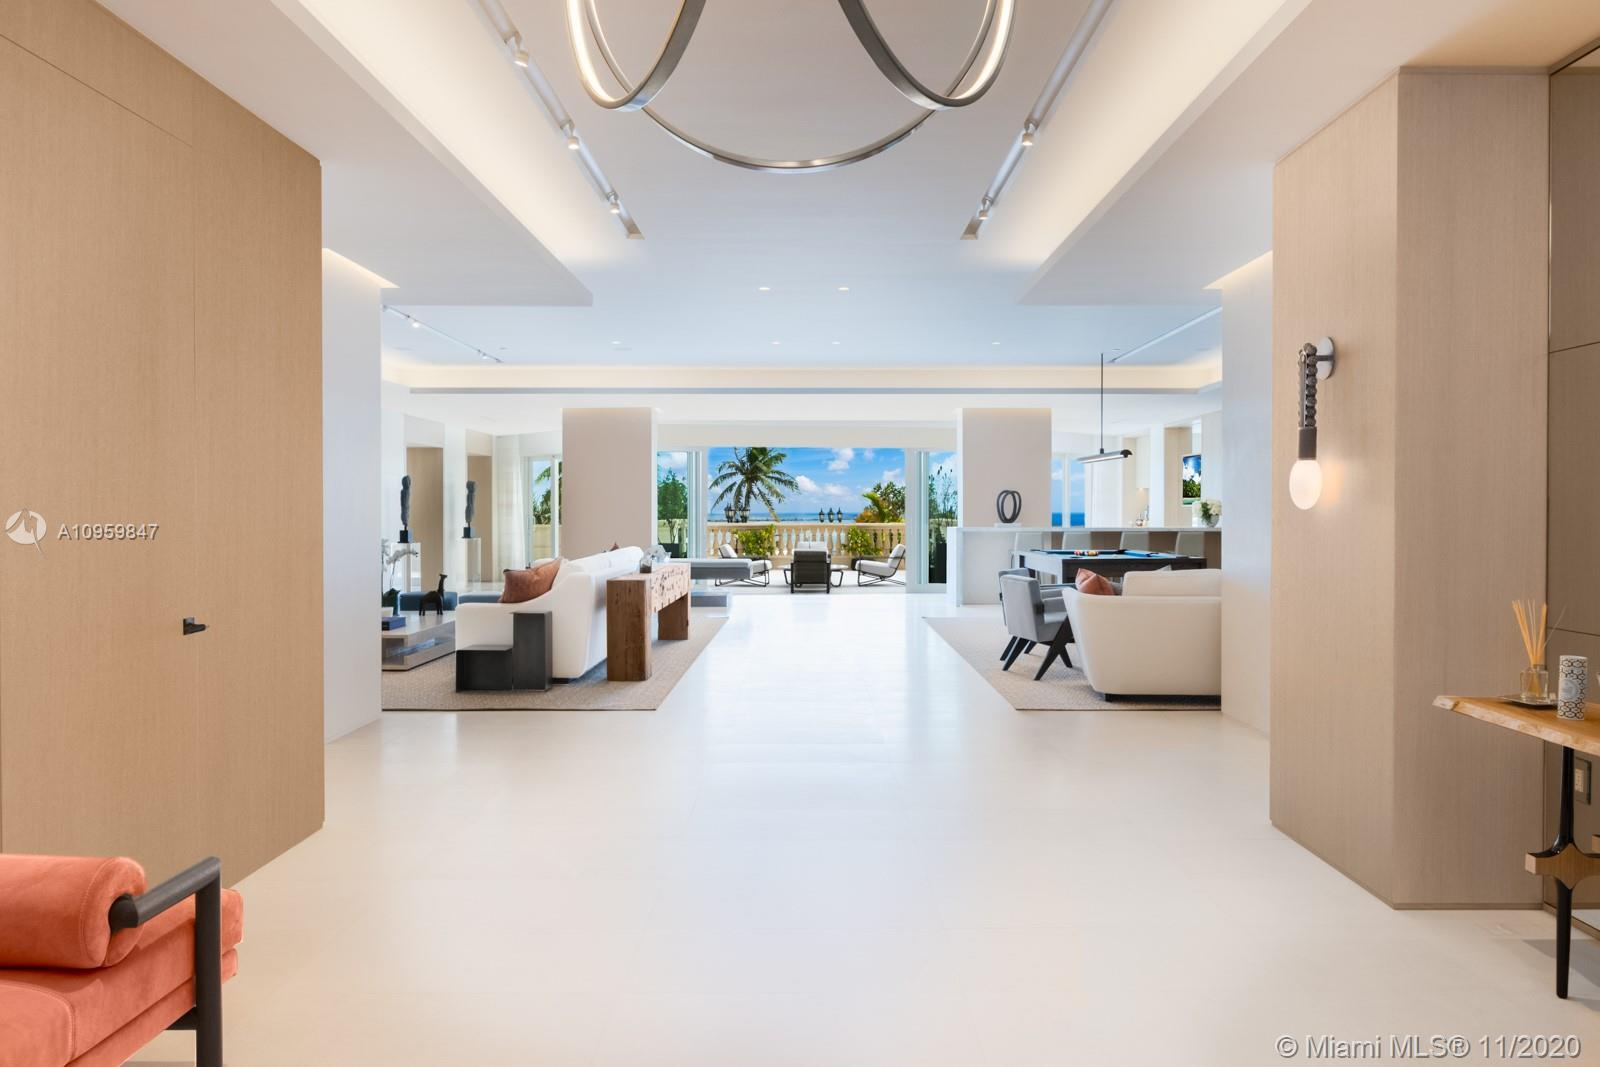 Encompassing over 12,000 Square feet of interior and exterior living space on exclusive and prestigi